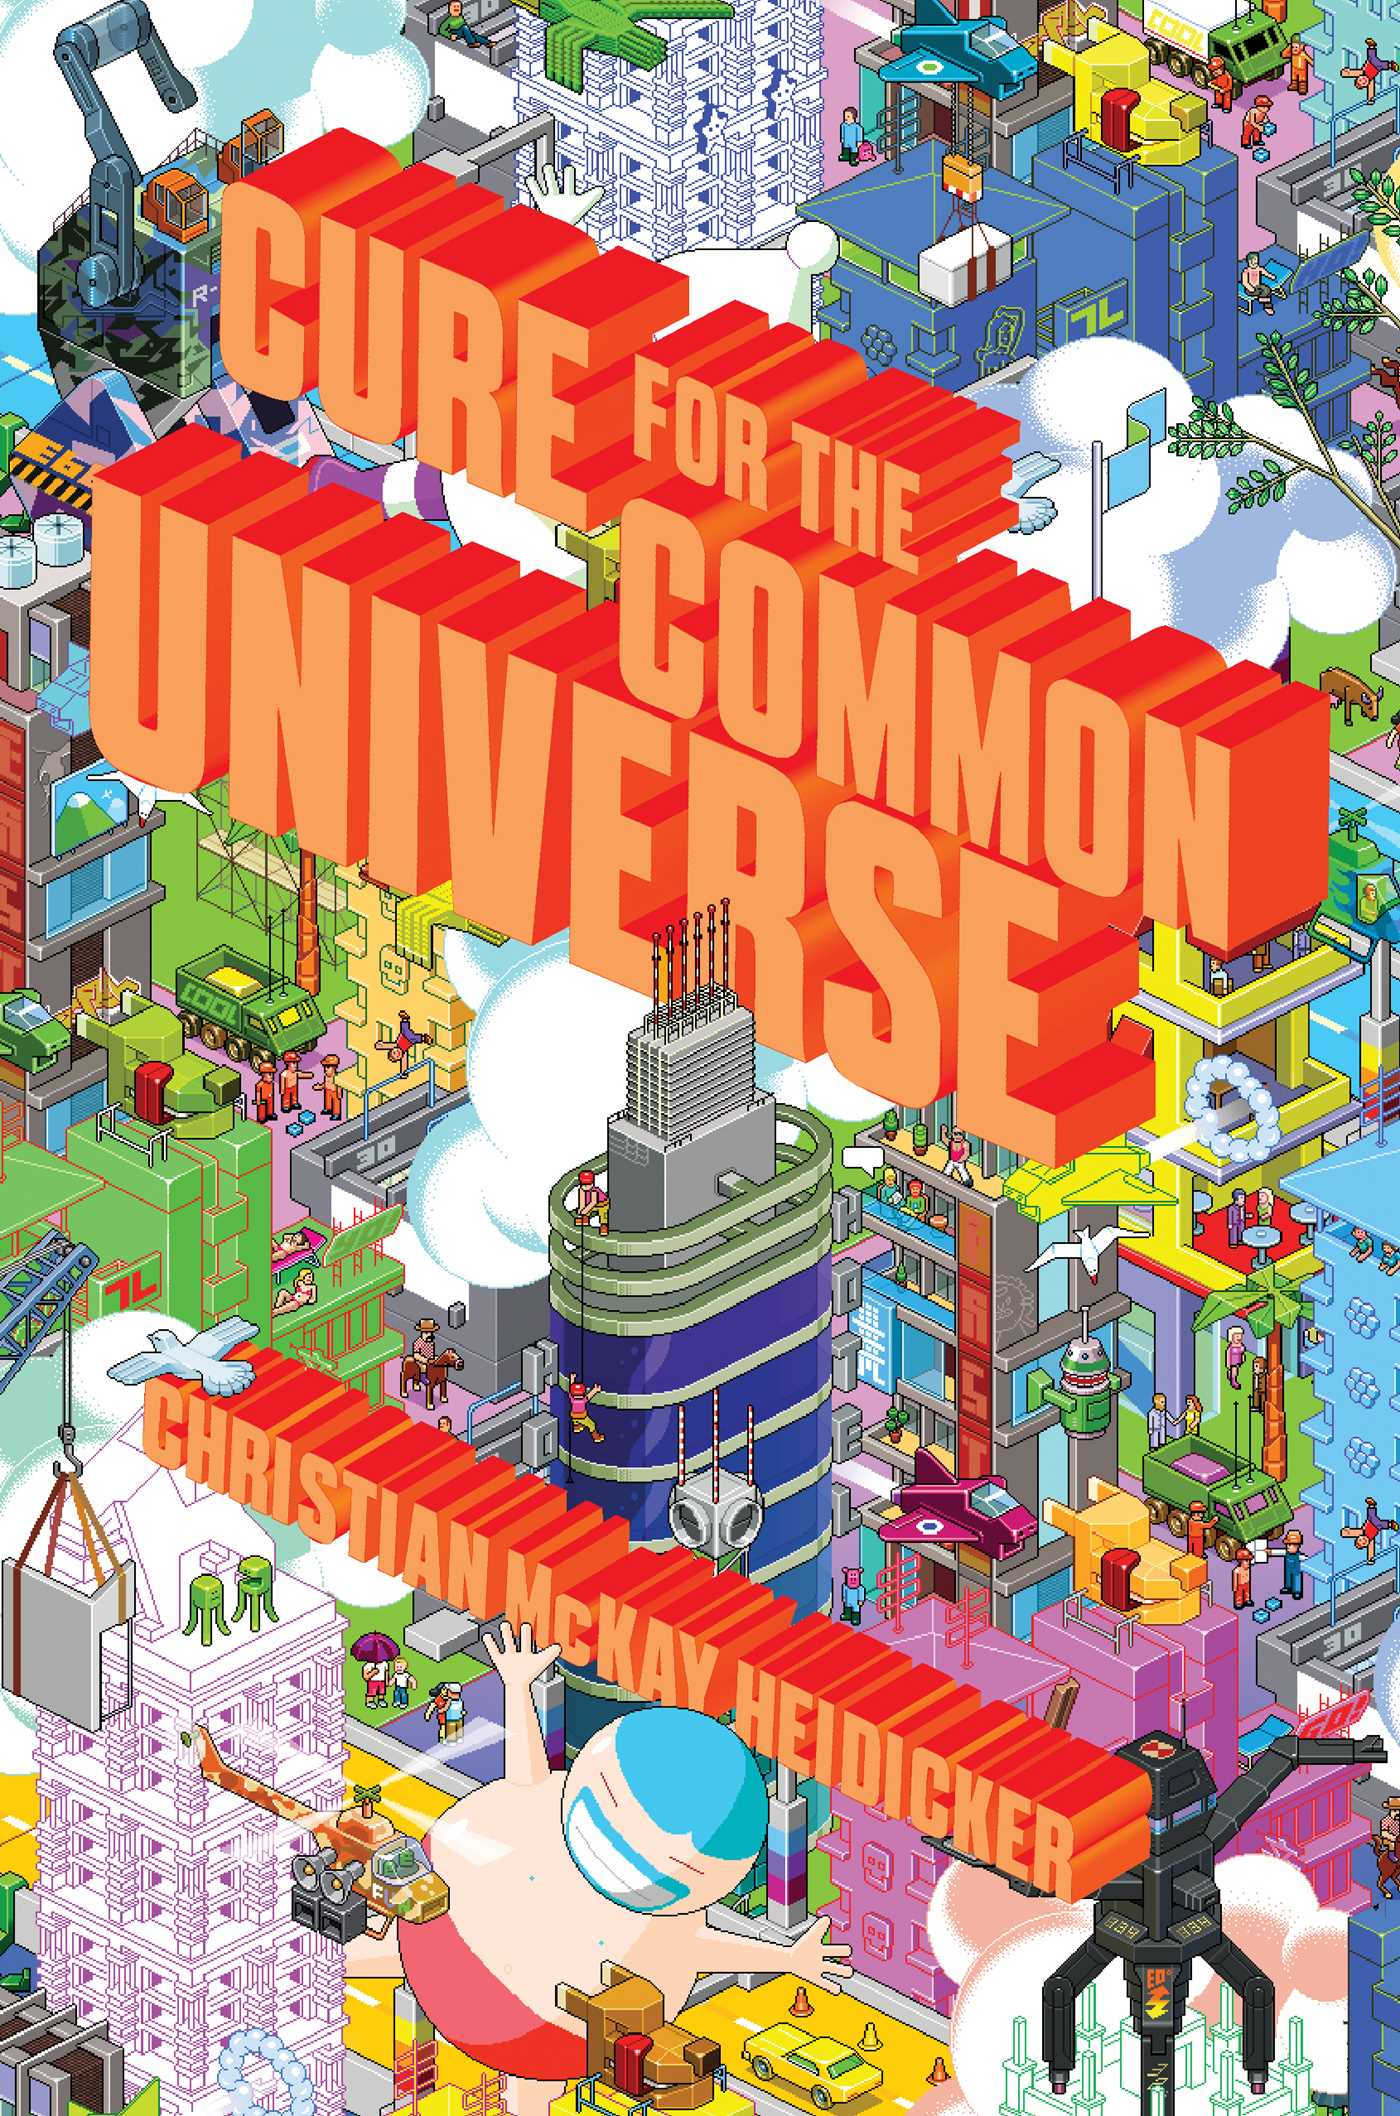 Cure for the common universe 9781481450270 hr